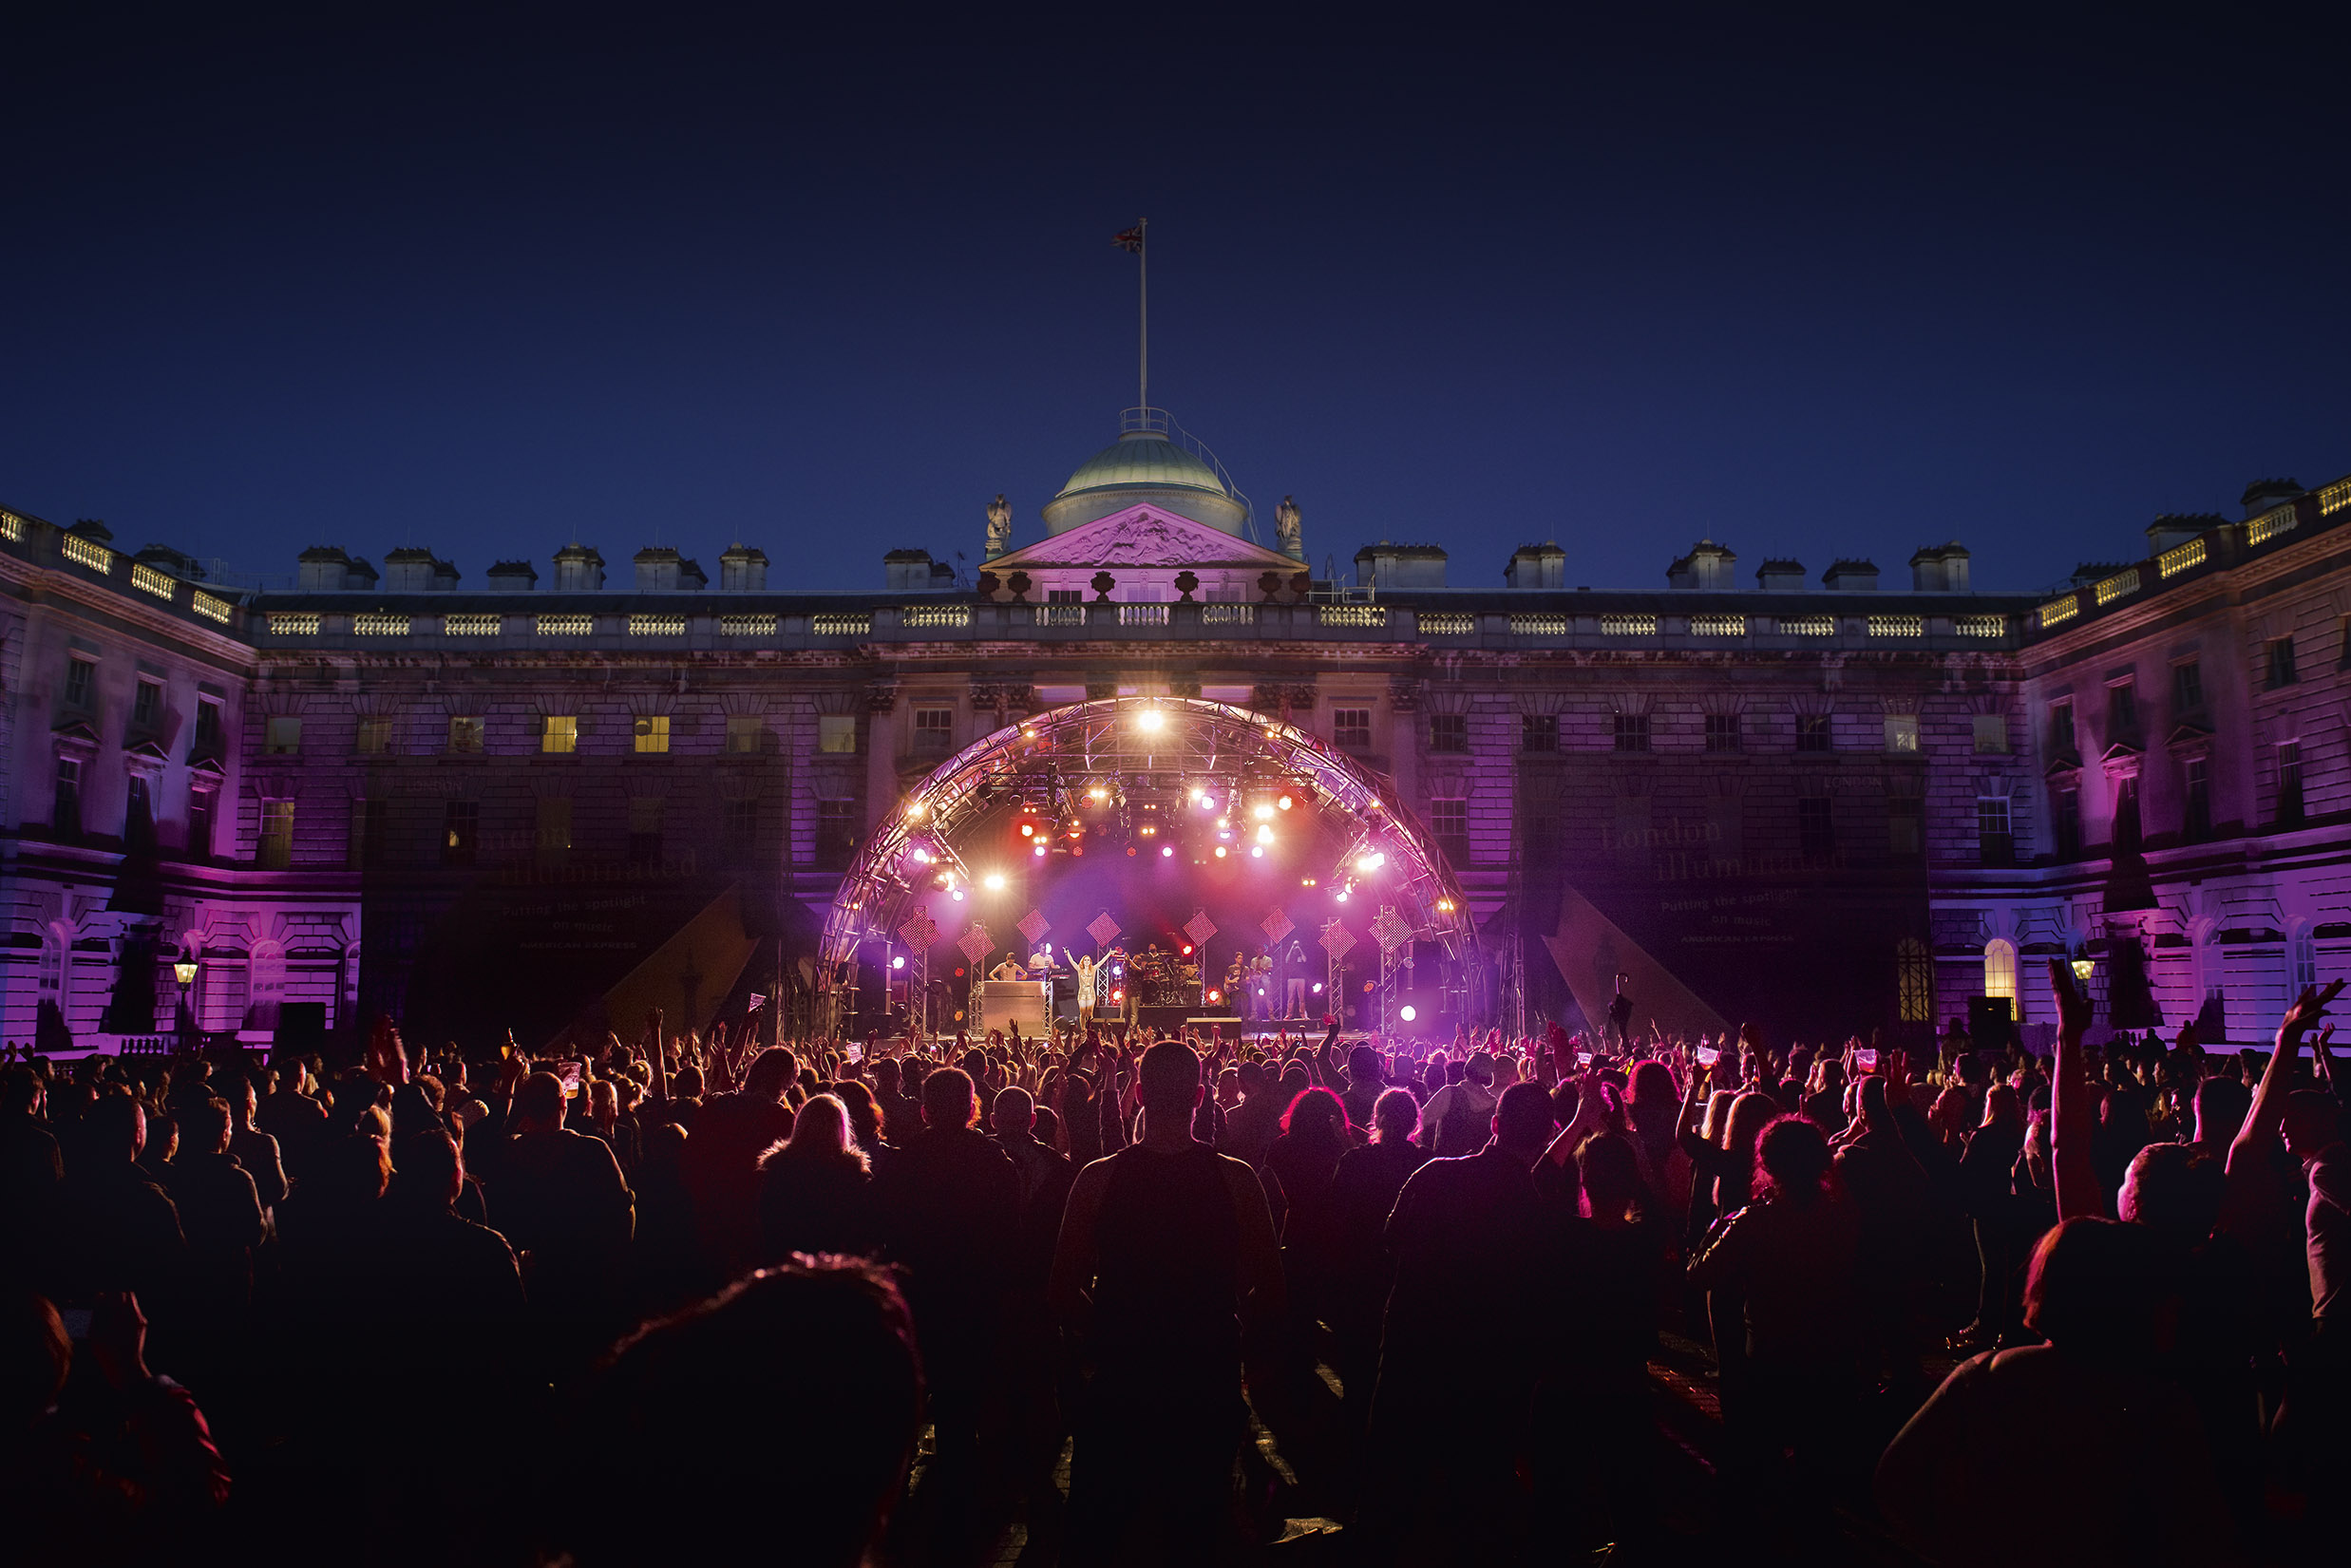 2013-03-15-SummerSeriesatSomersetHouse2013A5.jpg